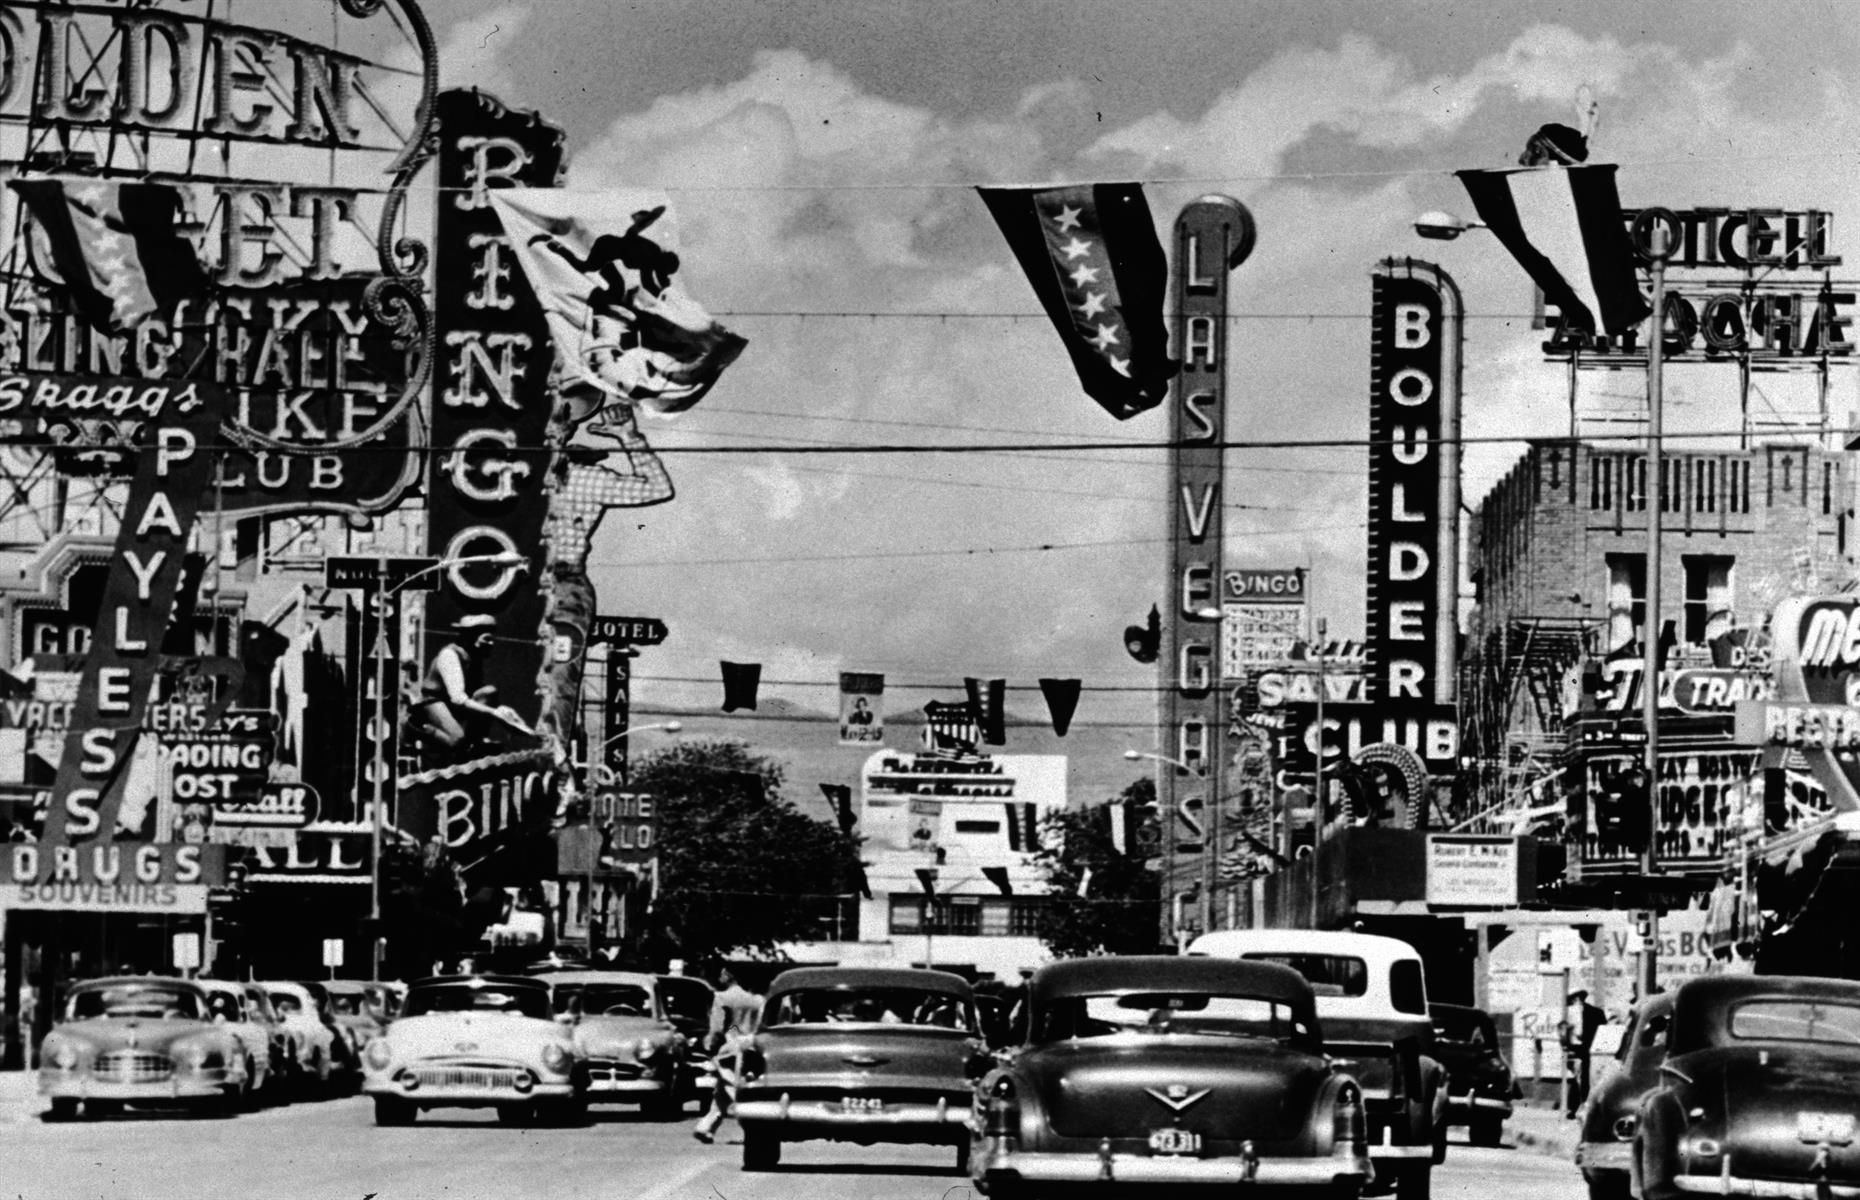 Slide 18 of 47: Before Las Vegas became all about The Strip, Downtown's Fremont Street was the place to be, and this buzzy boulevard remains a top attraction in Sin City. Glitter Gulch, as it came to be known, built up during the 1920s, and thrived after gambling was decriminalized in 1931. It's shown here in the 1950s, clogged with cars driving past its winking neon signs.